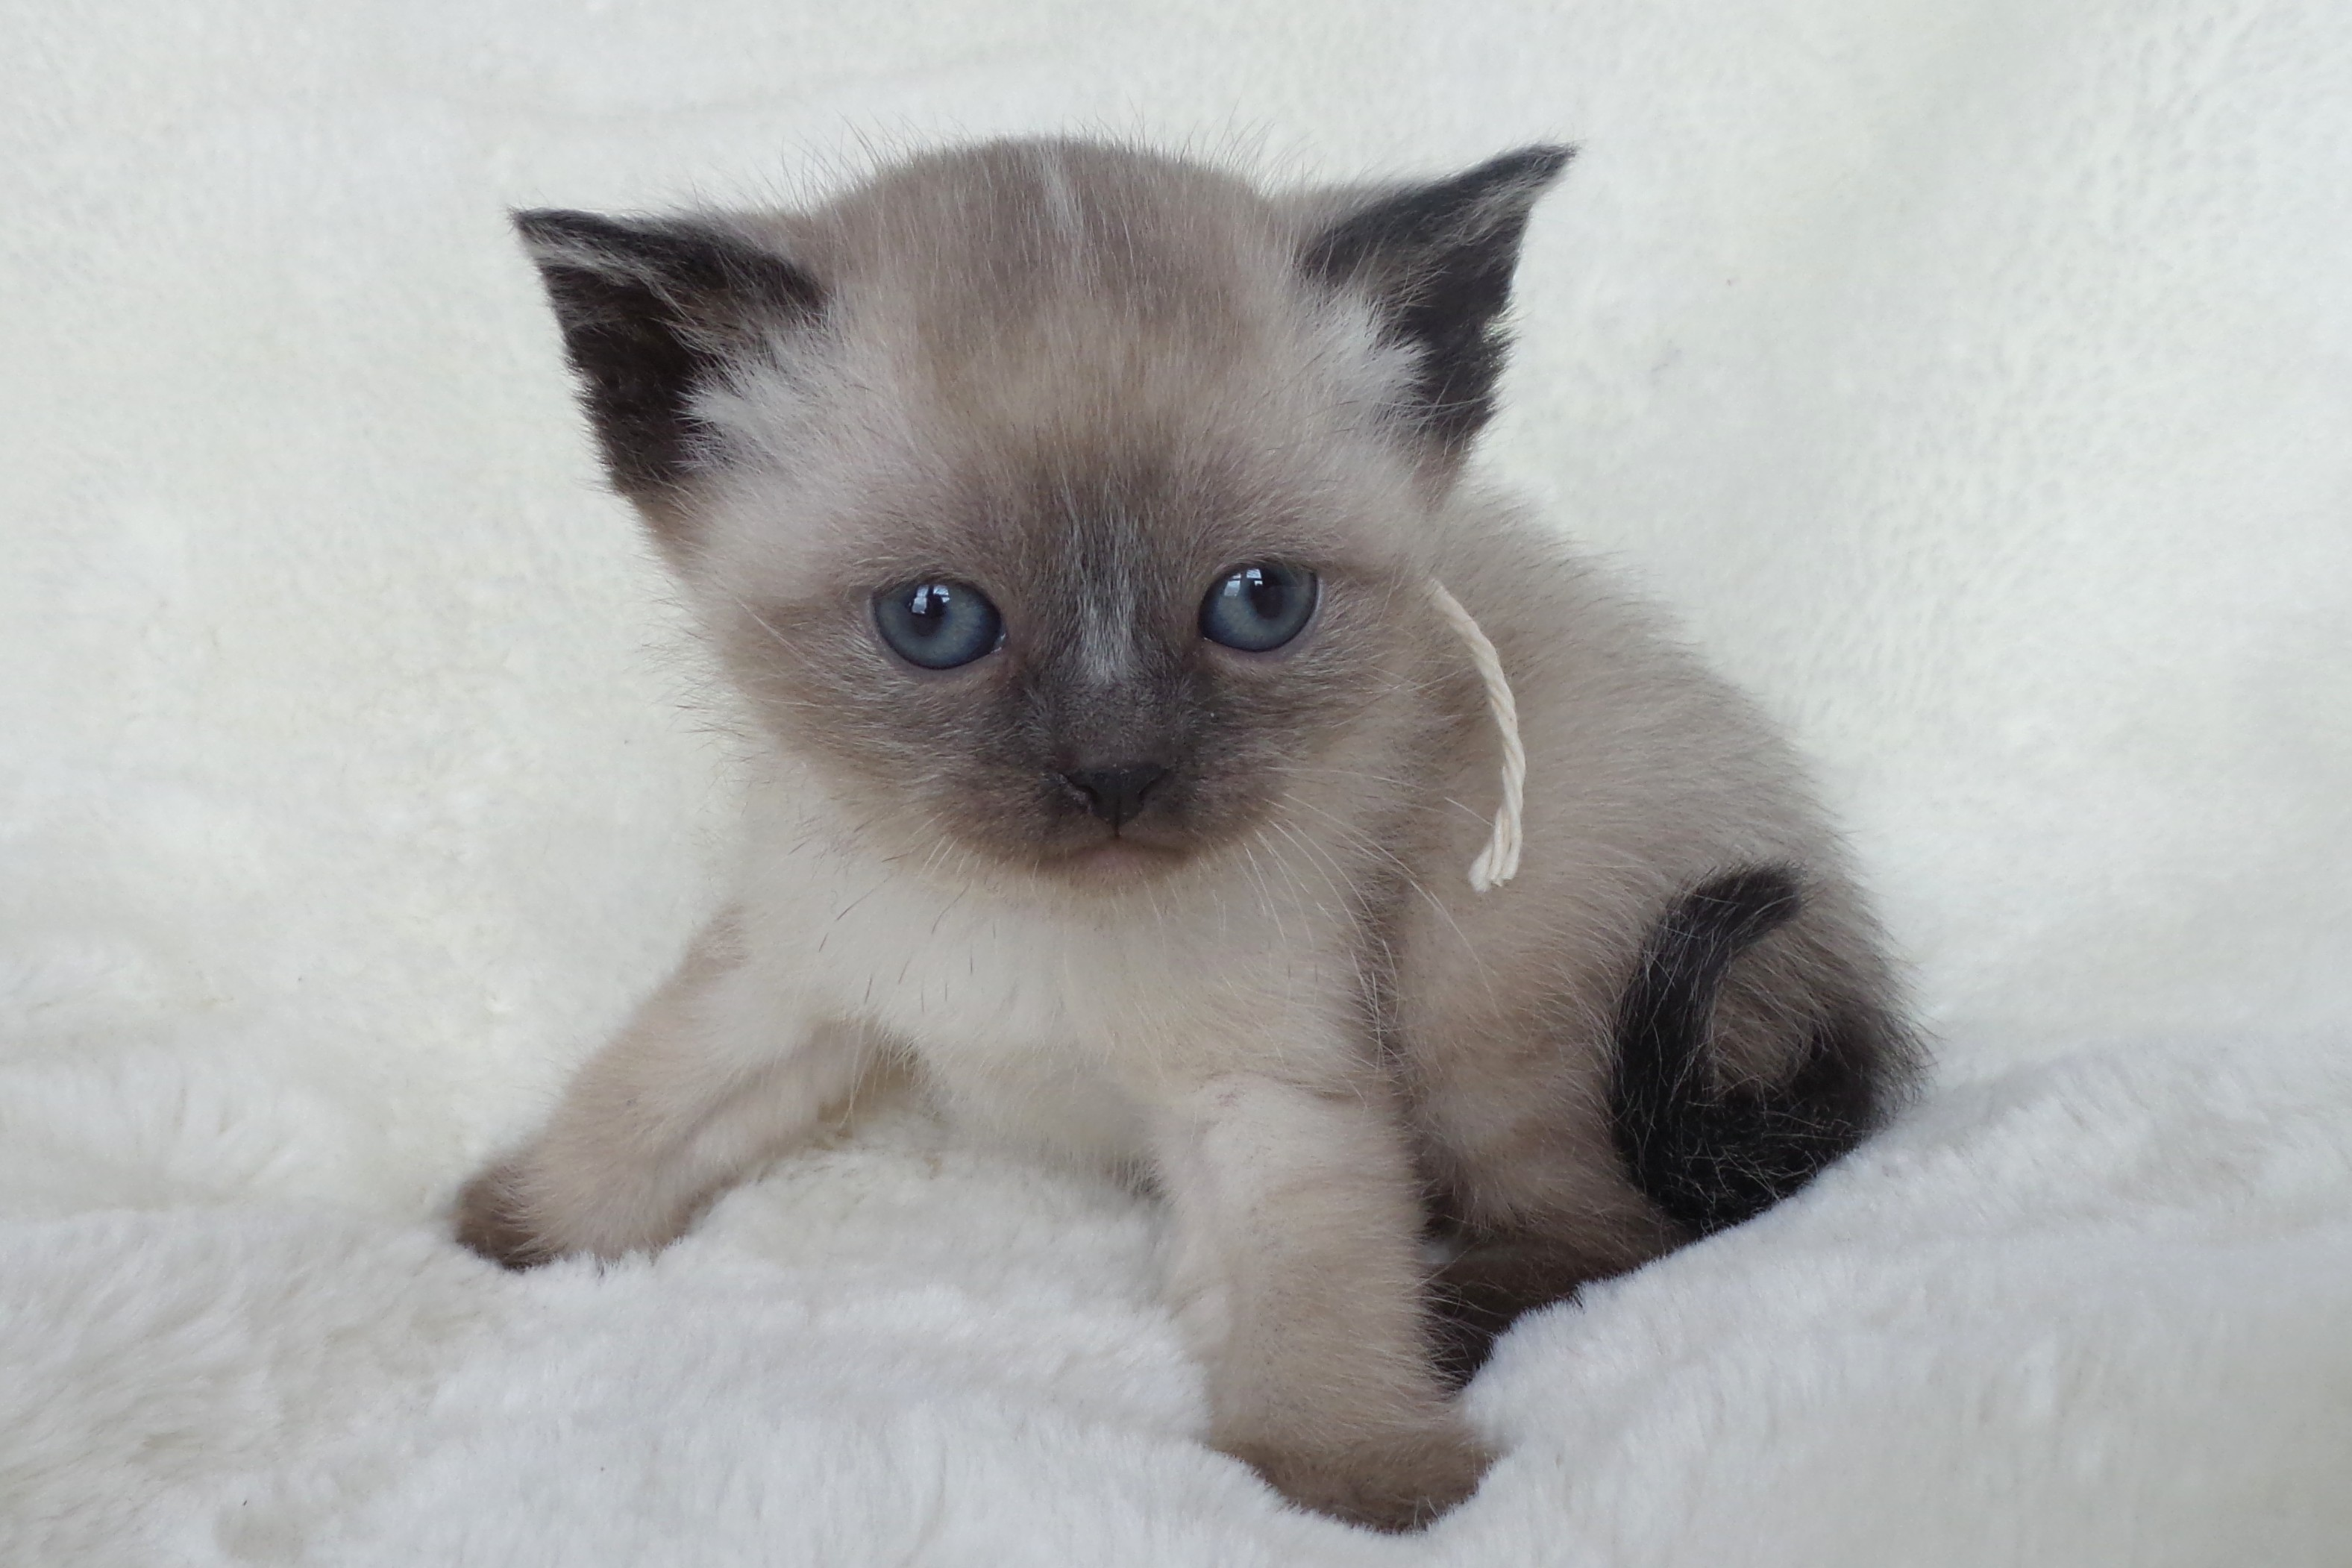 Mitten Kittens : Siamese Kitten Breeder from Michigan